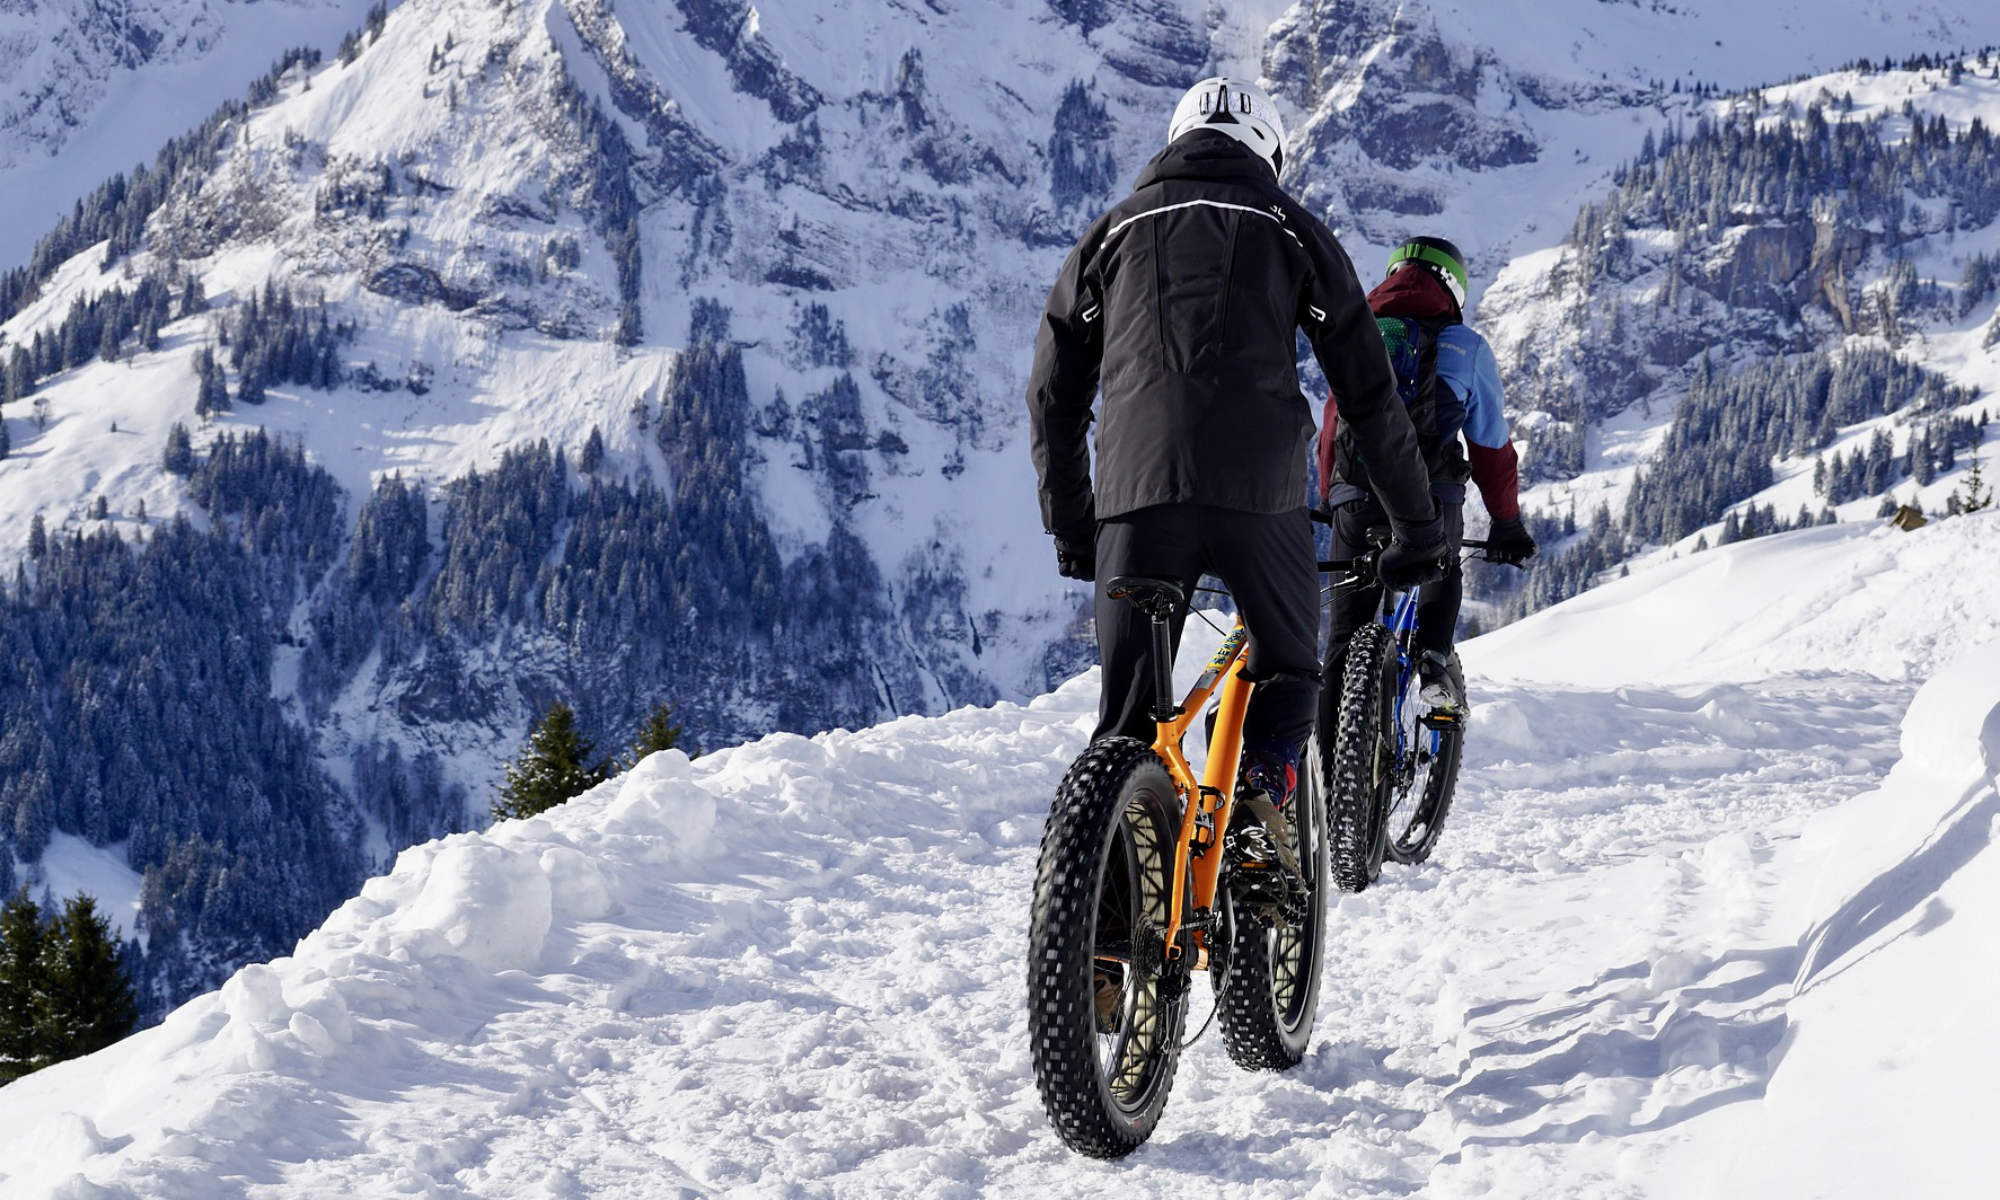 Cyclists riding through the snow on fatbikes in the mountains.